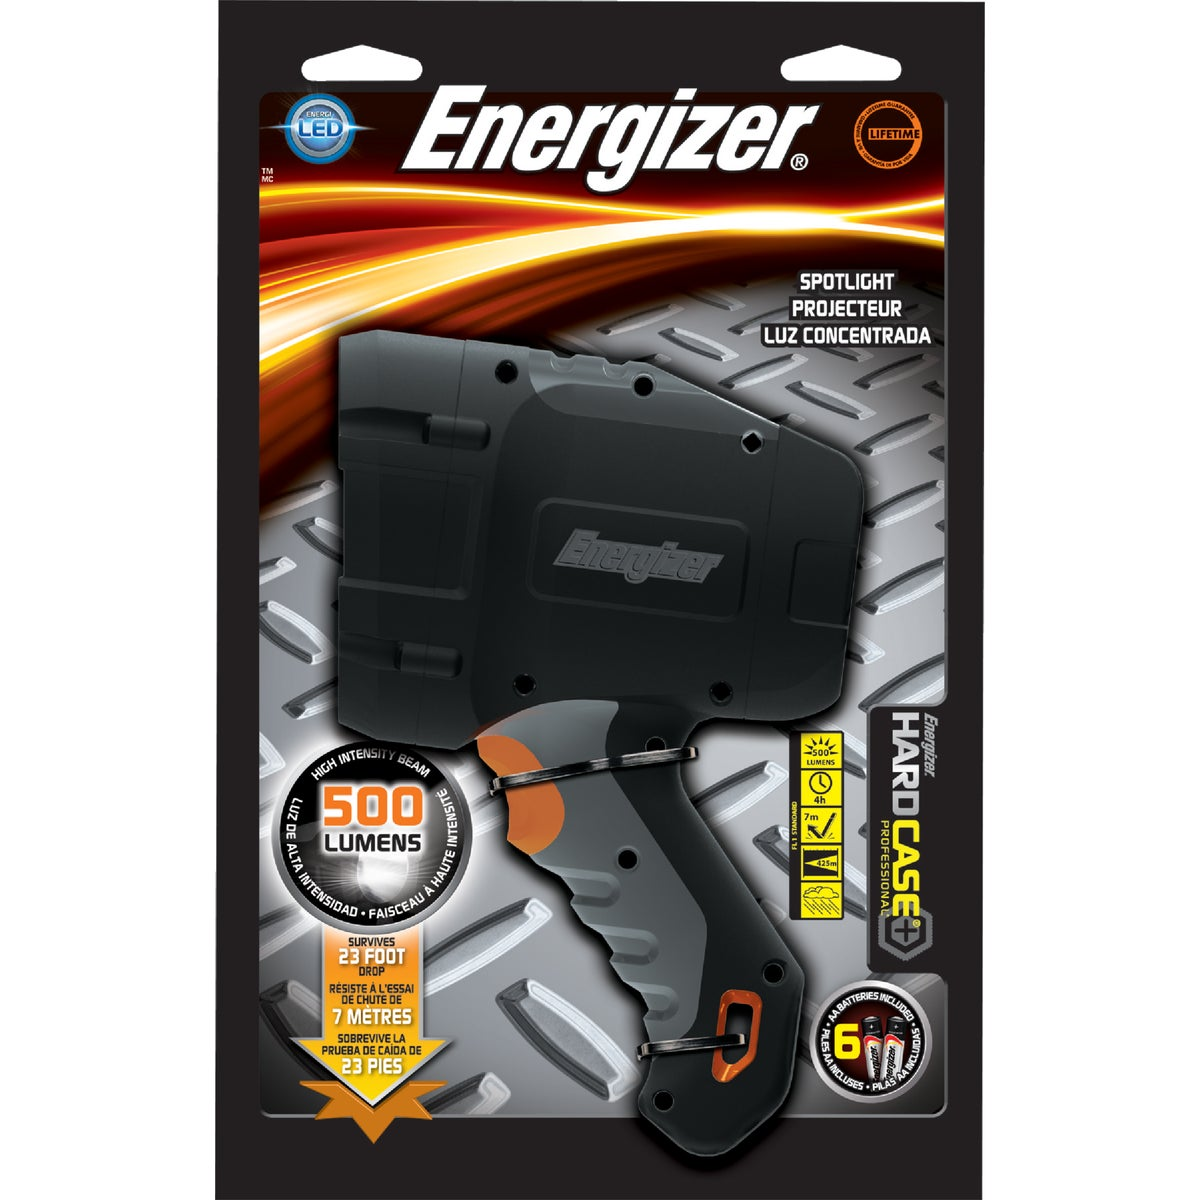 4C HARD CASE SPOTLIGHT - HCSP61E by Energizer